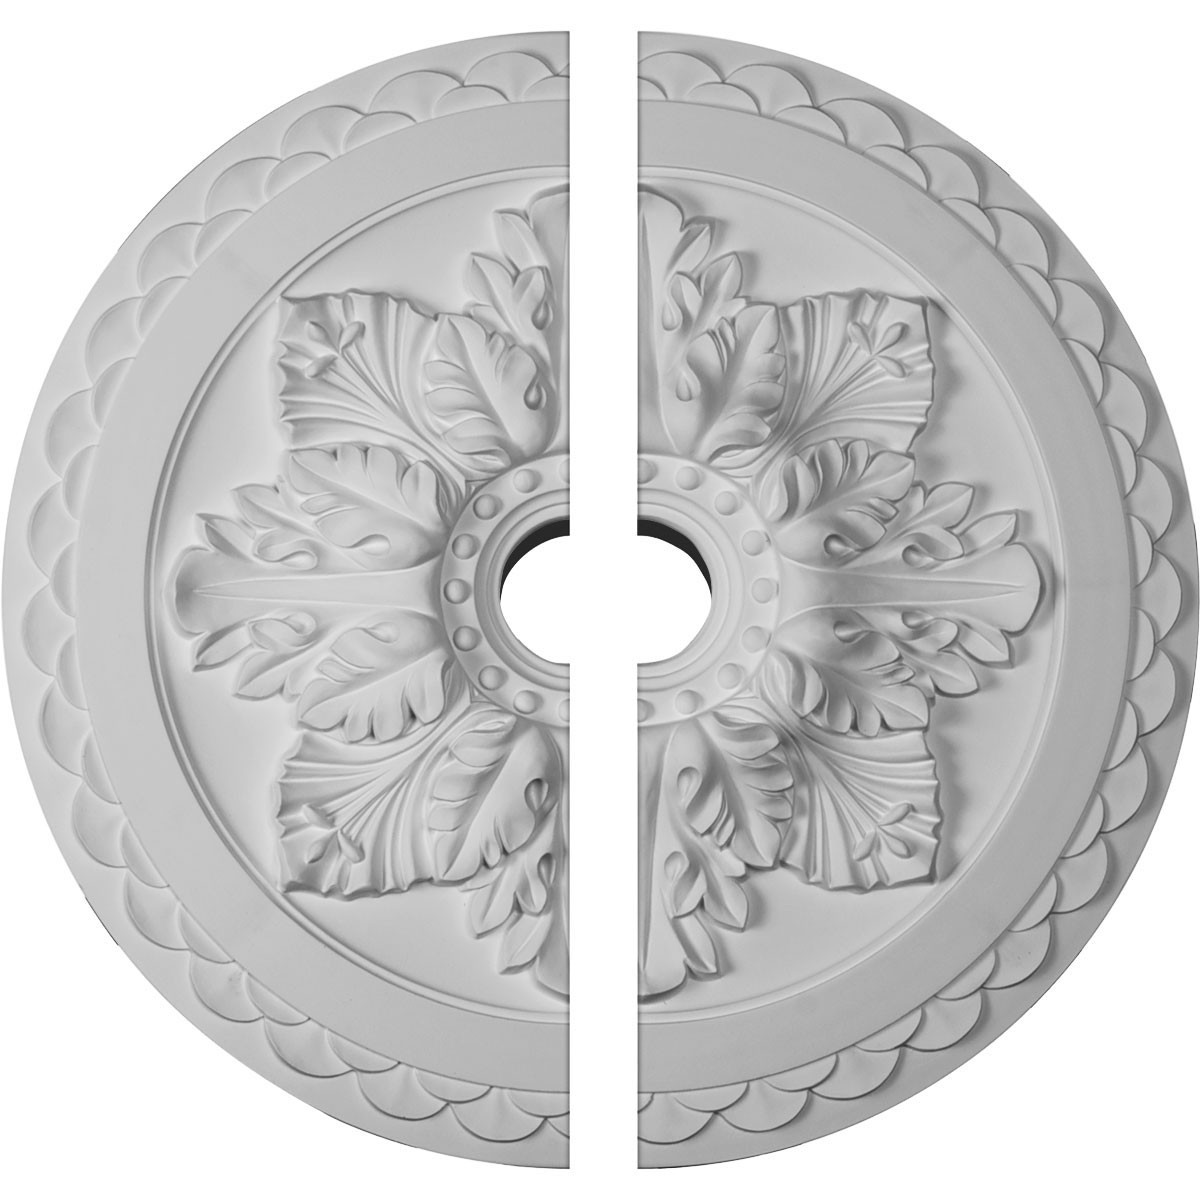 """EM-CM23BO2 - 23 5/8""""OD x 3""""ID x 2""""P Bordeaux Deluxe Ceiling Medallion, Two Piece (Fits Canopies up to 4"""")"""